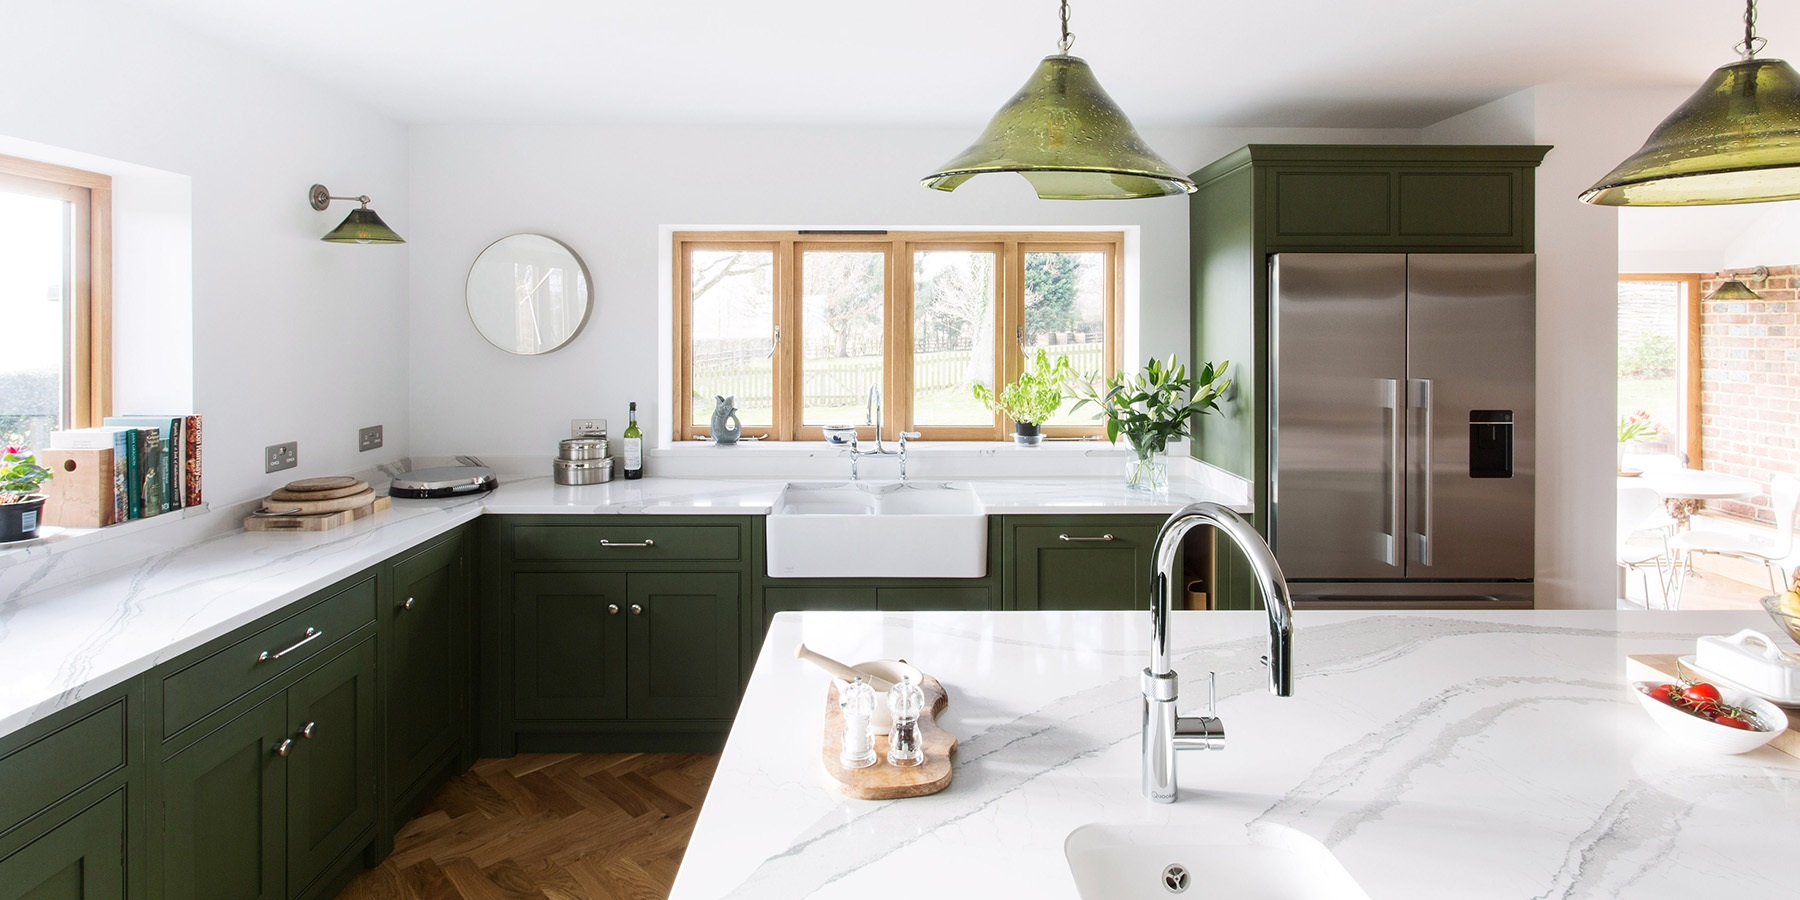 Classic Shaker Kitchen With Central Island - Burlanes bespoke Wellsdown kitchen with central kitchen island and Belfast sink.